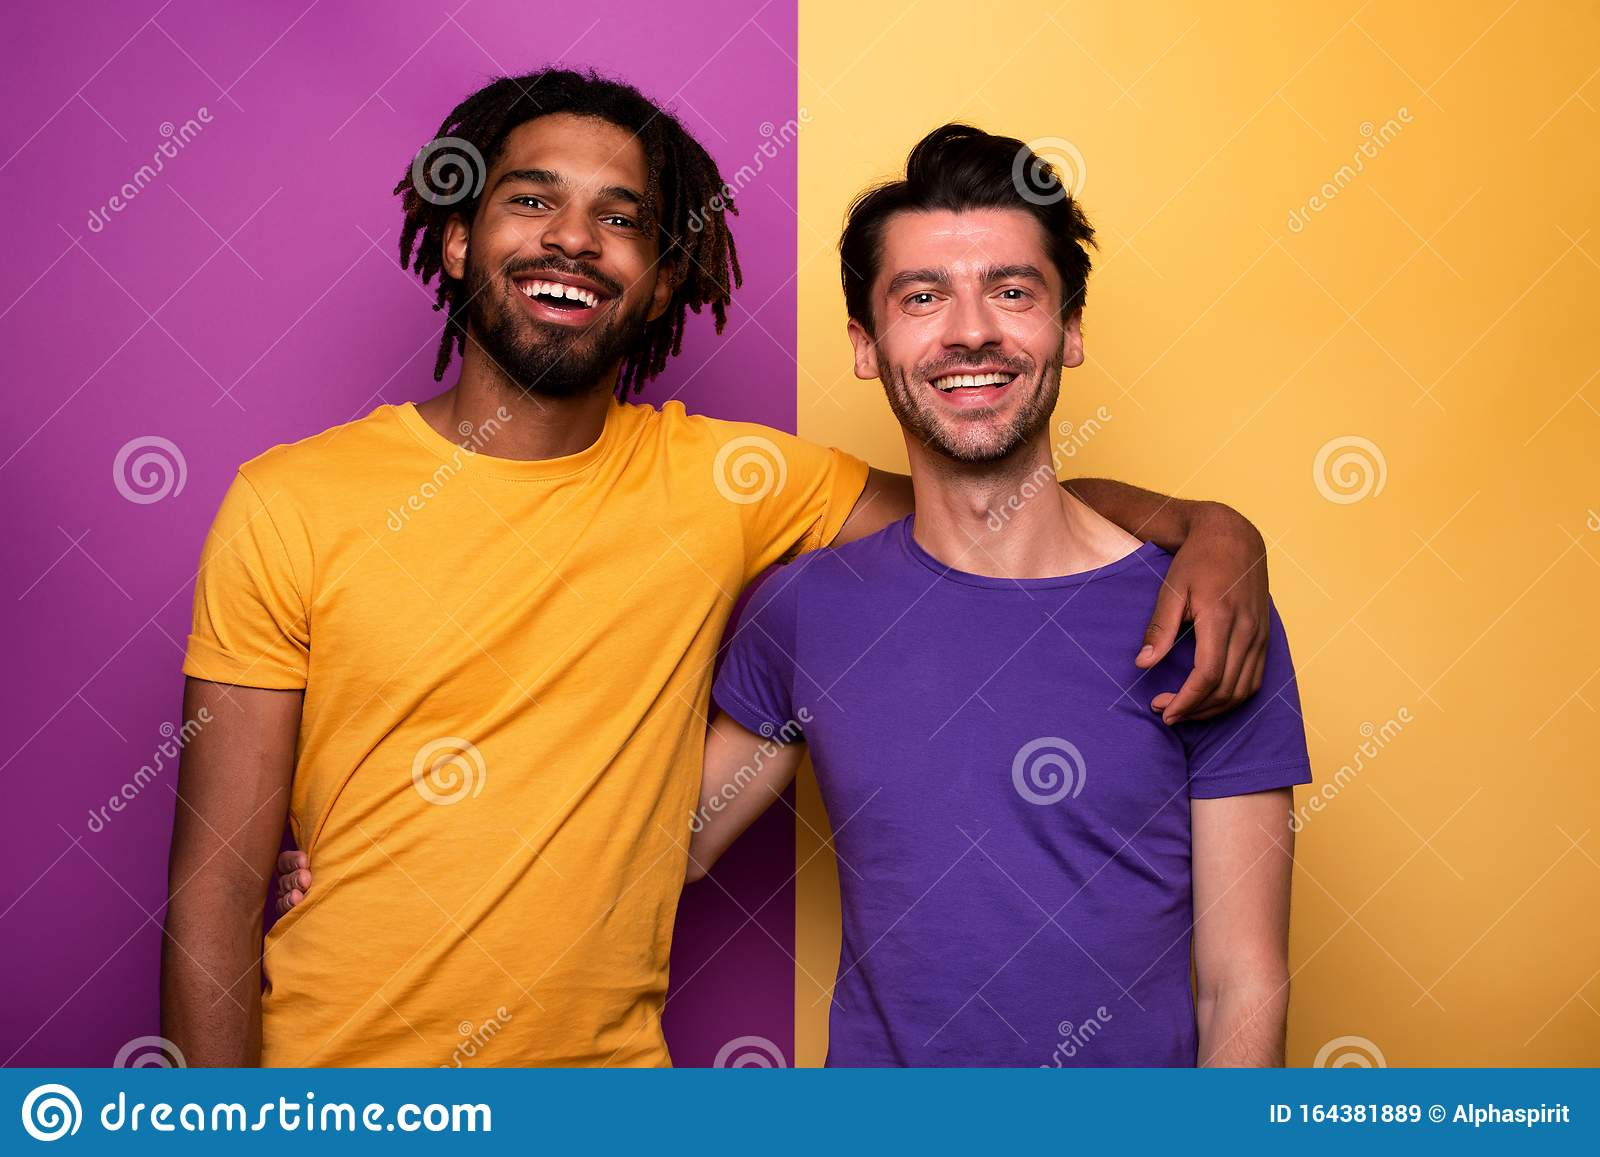 Blank and white friends. Concept of integration, union and partnership. Yellow and violet background